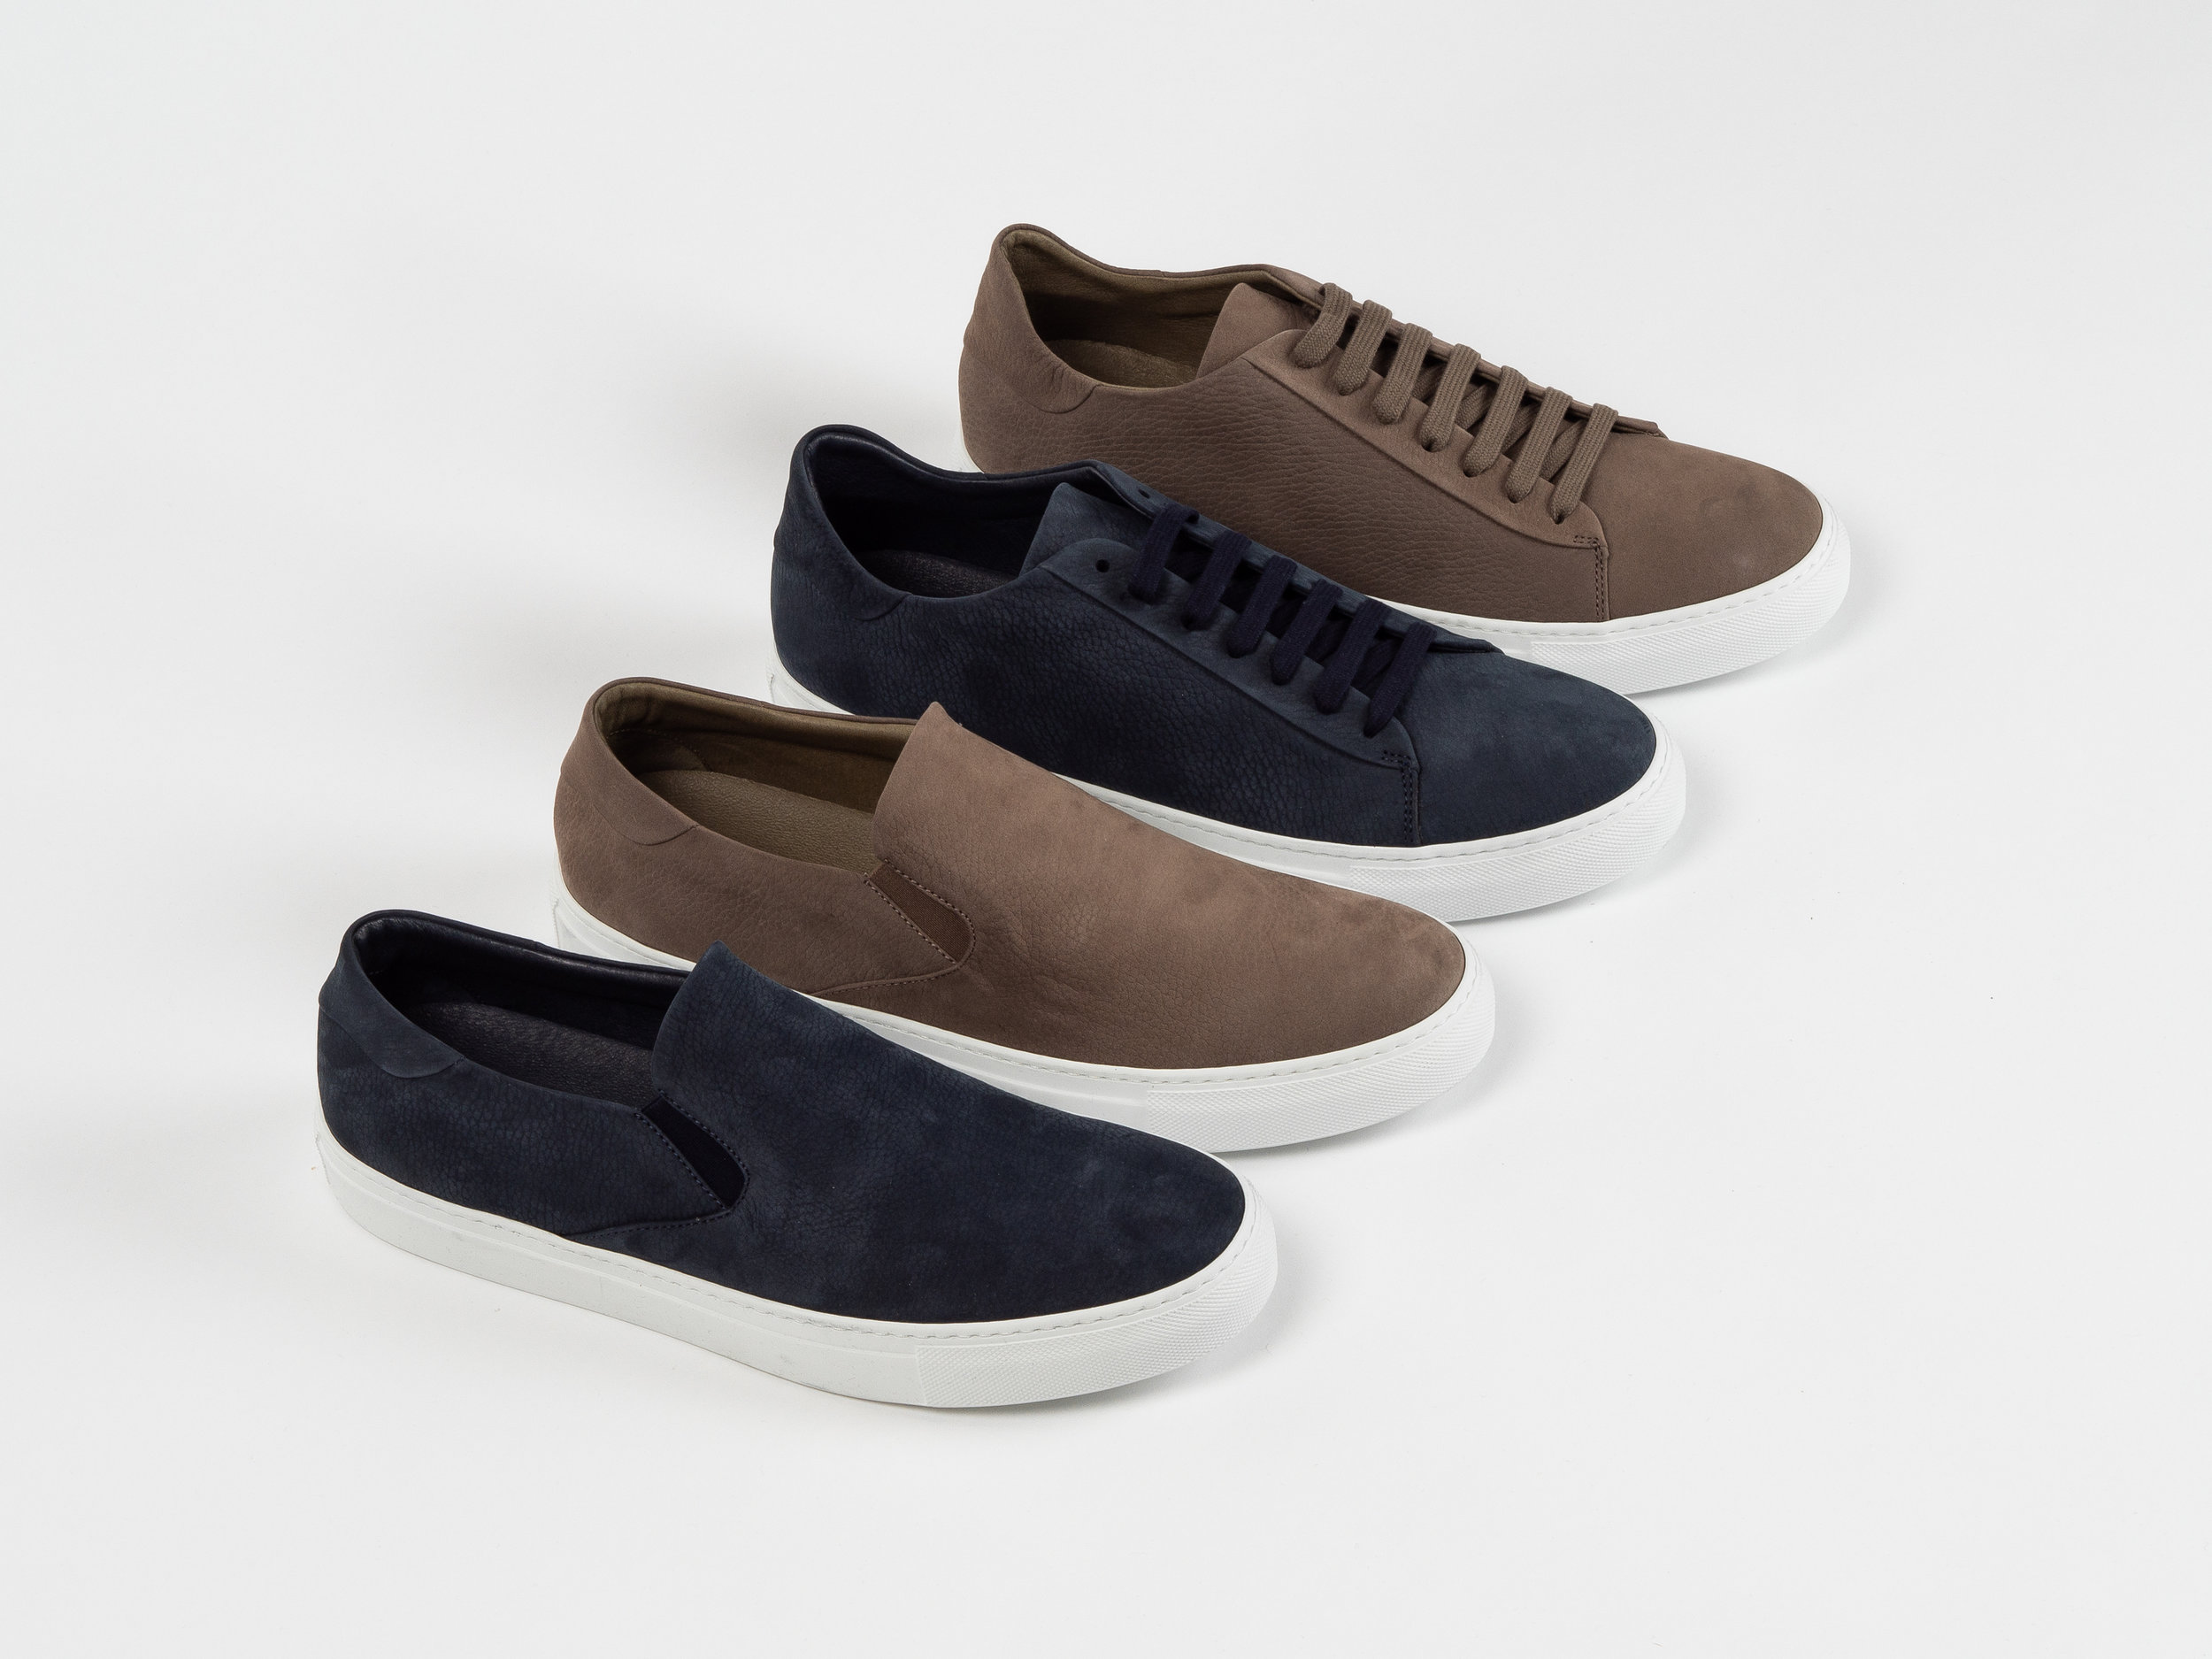 Wings + Horns Nubuck Footwear    VIEW THIS FEATURE